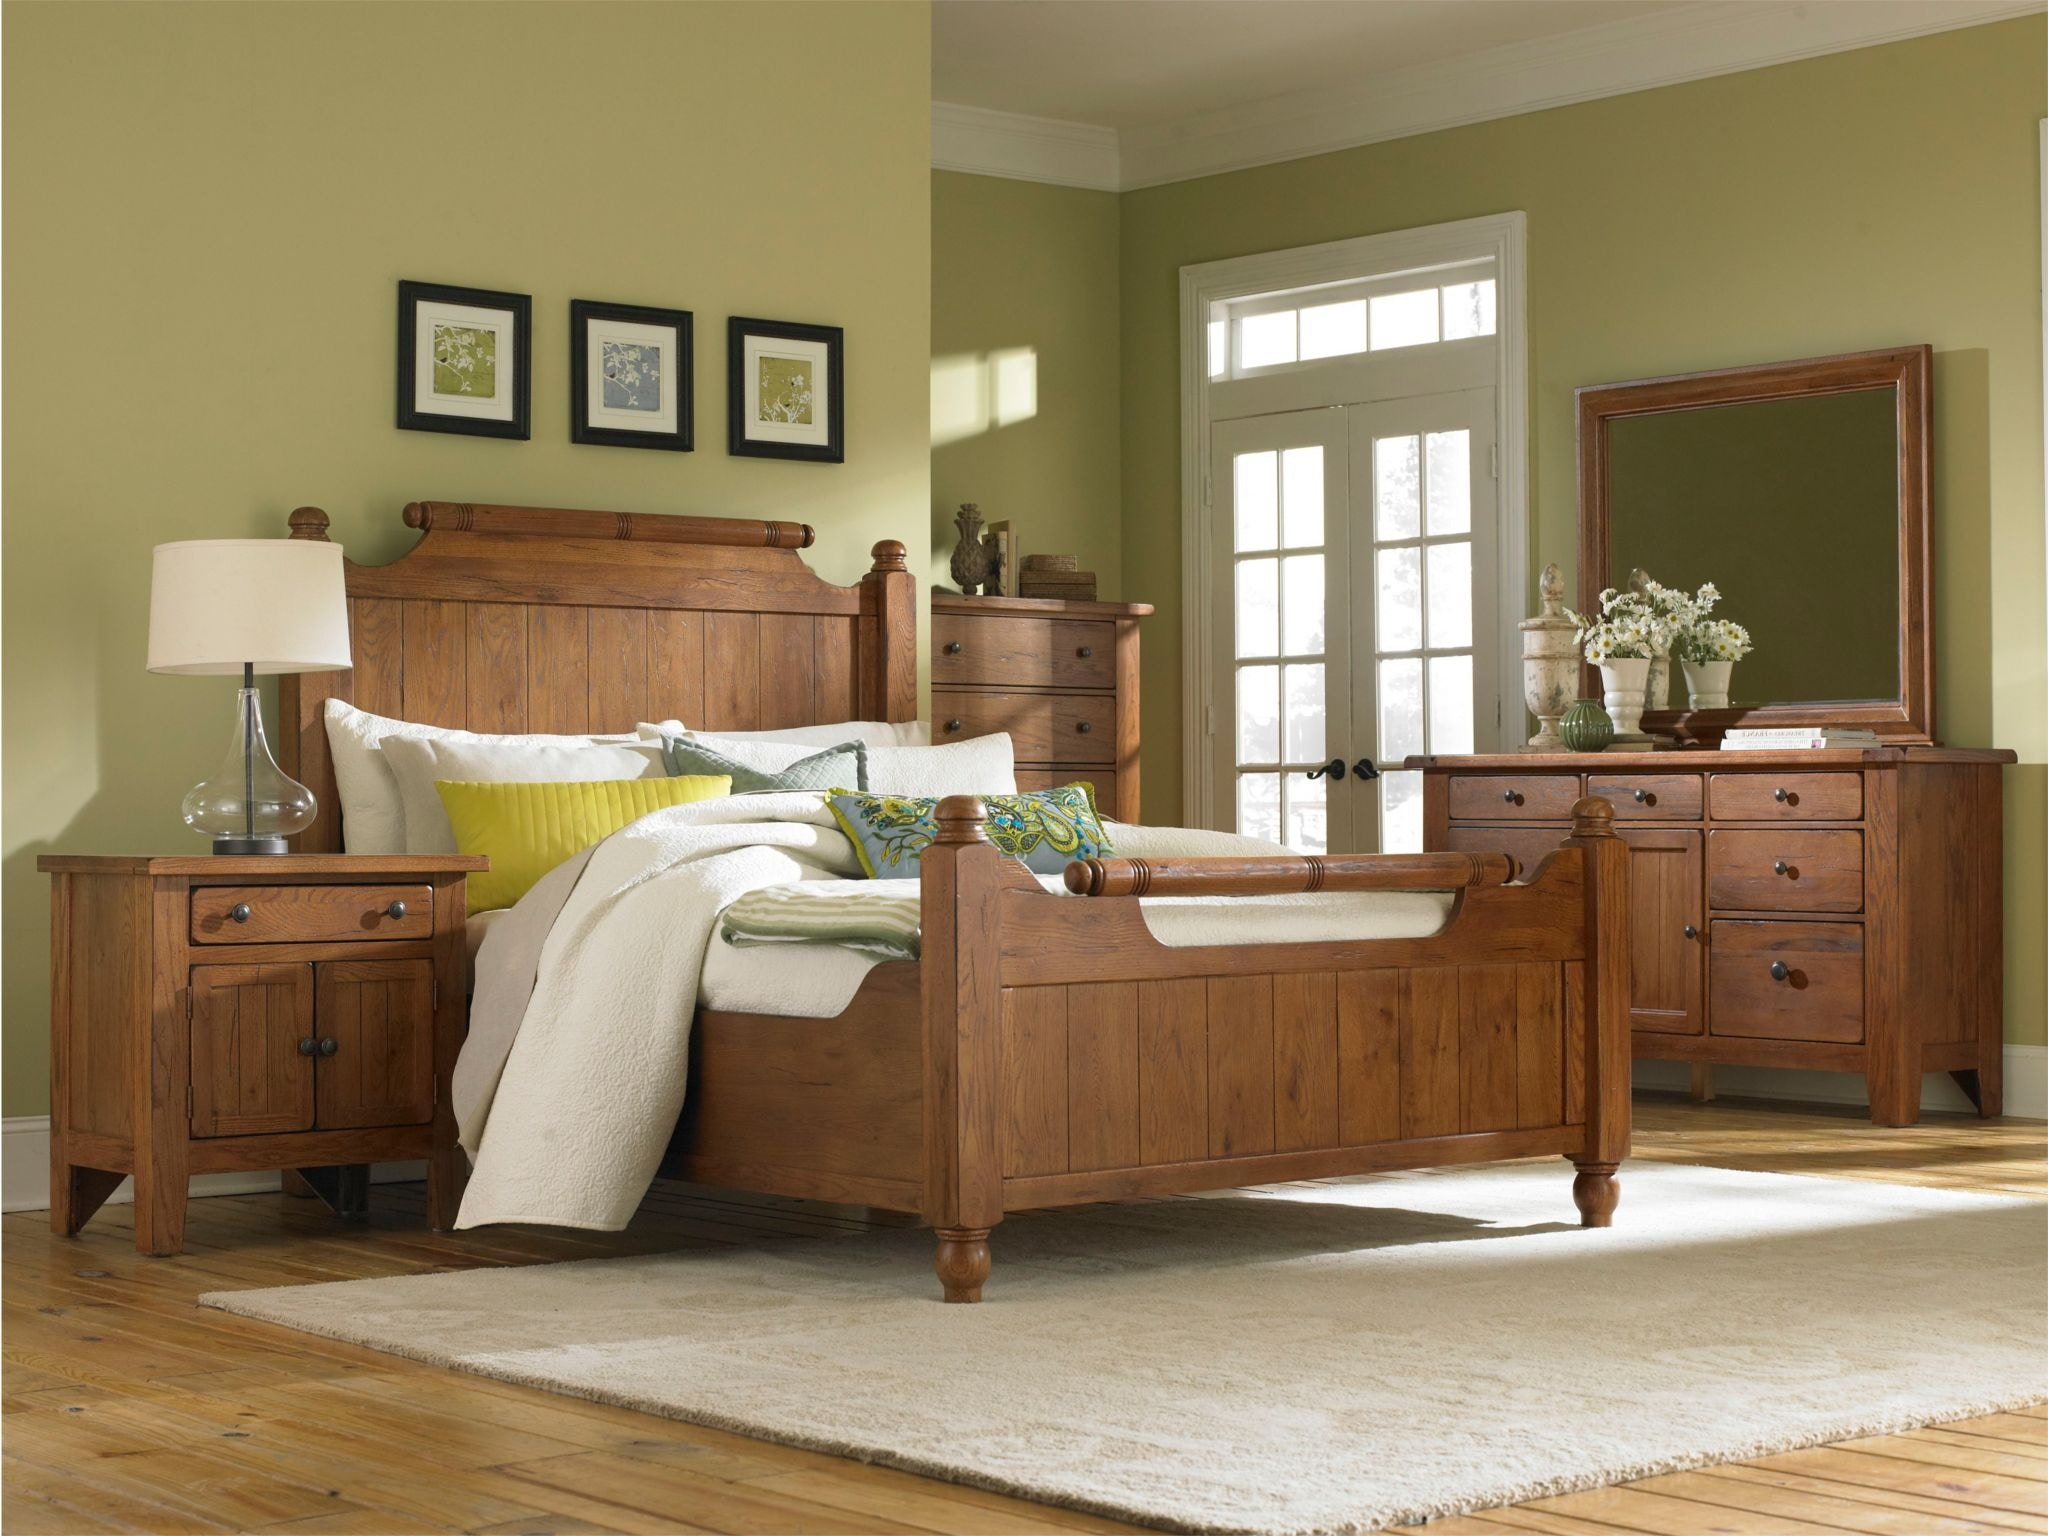 Broyhill Bedroom Attic Heirlooms Wood Hook On Rails, Rustic Oak Stain,  Queen/King 4399 570 At Siker Furniture